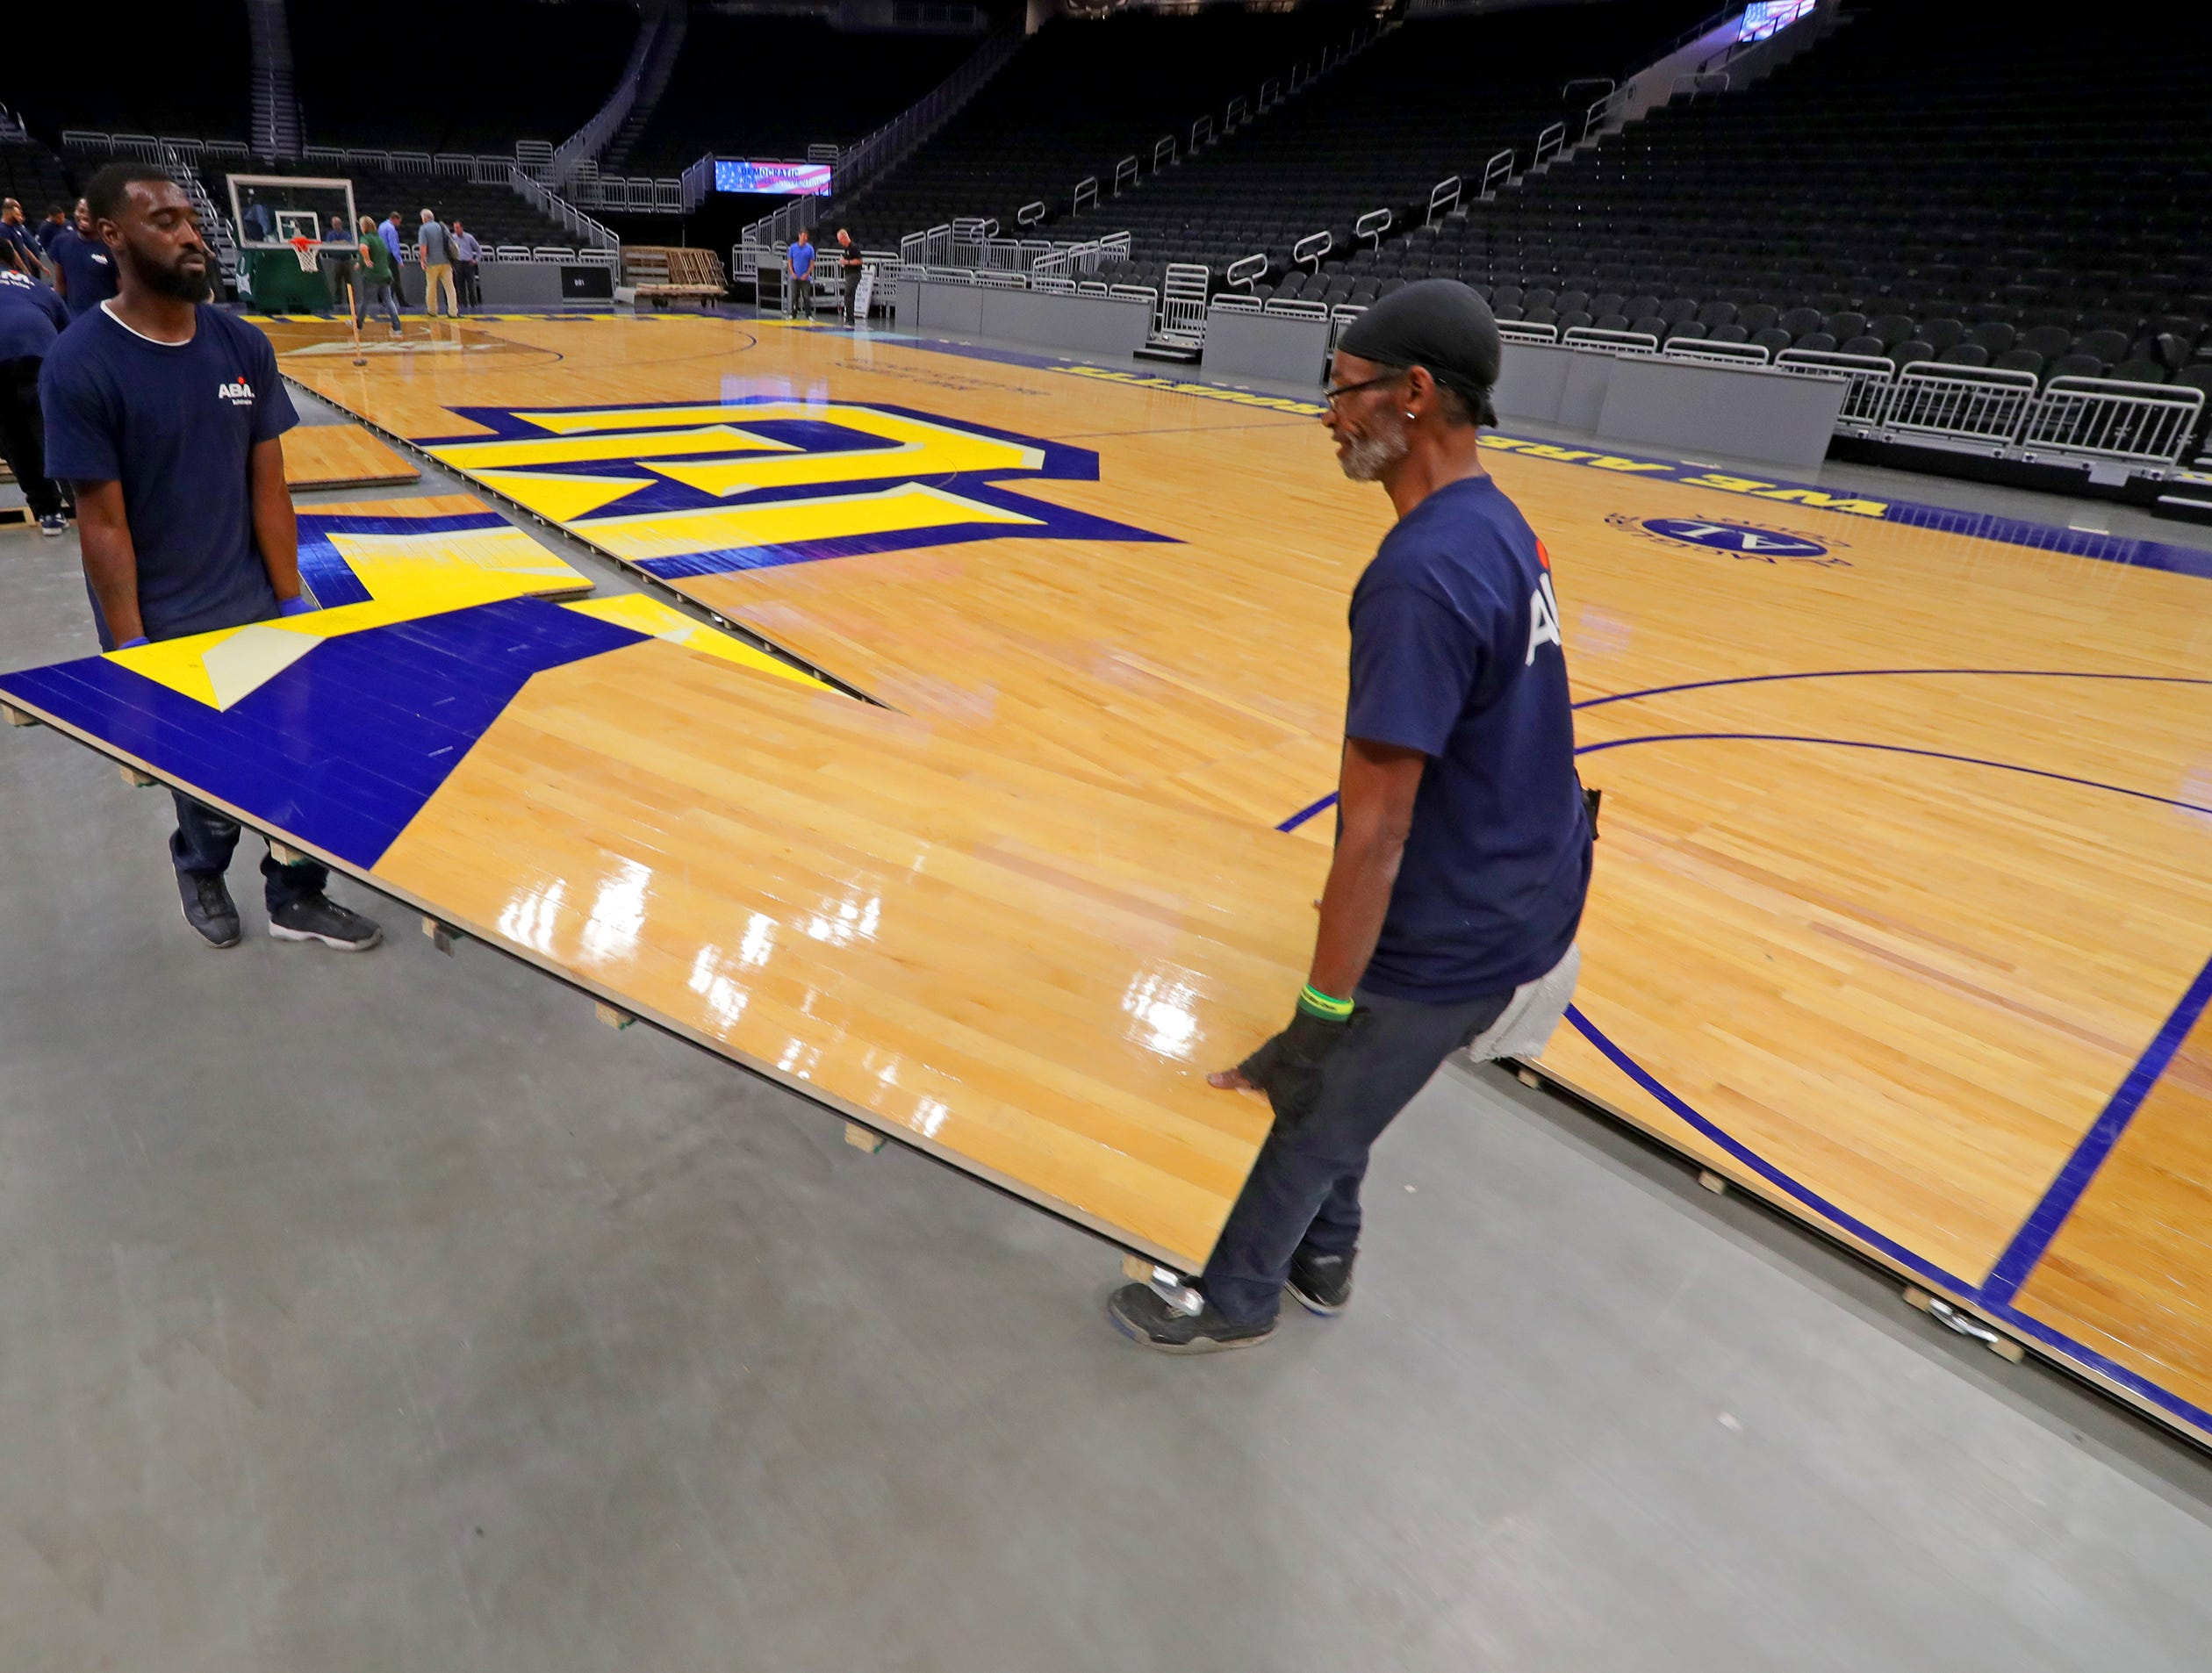 Byron Powell (right) and Broderick Jordan work to install the Marquette floor. The Marquette mens' basketball team locker room is complete at the new Fiserve Forum, the home of the Milwaukee Bucks. Monday, August 27, 2018.  -  Photo by Mike De Sisti / Milwaukee Journal Sentinel